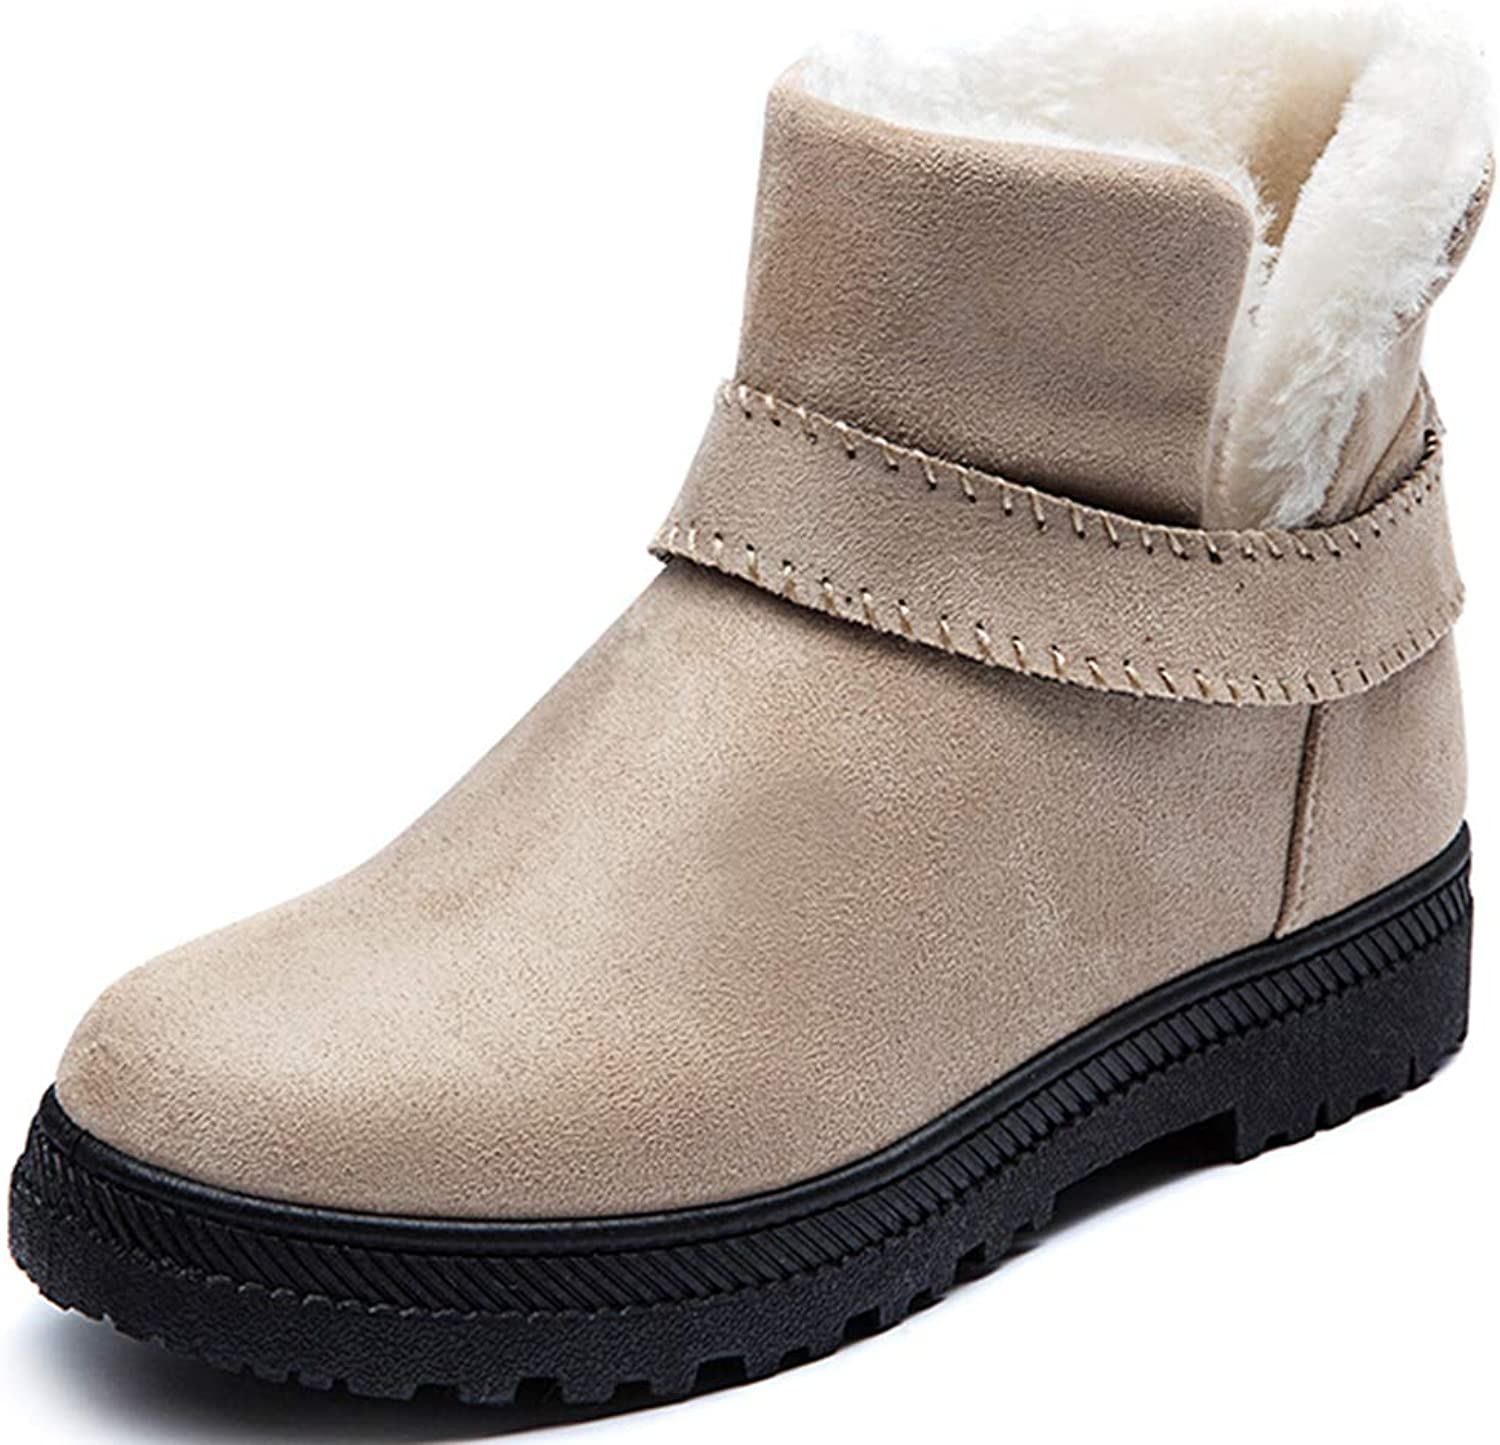 XIANV Women High Top Suede Waterproof Winter Snow Boots Slip-on Cotton Lined shoes